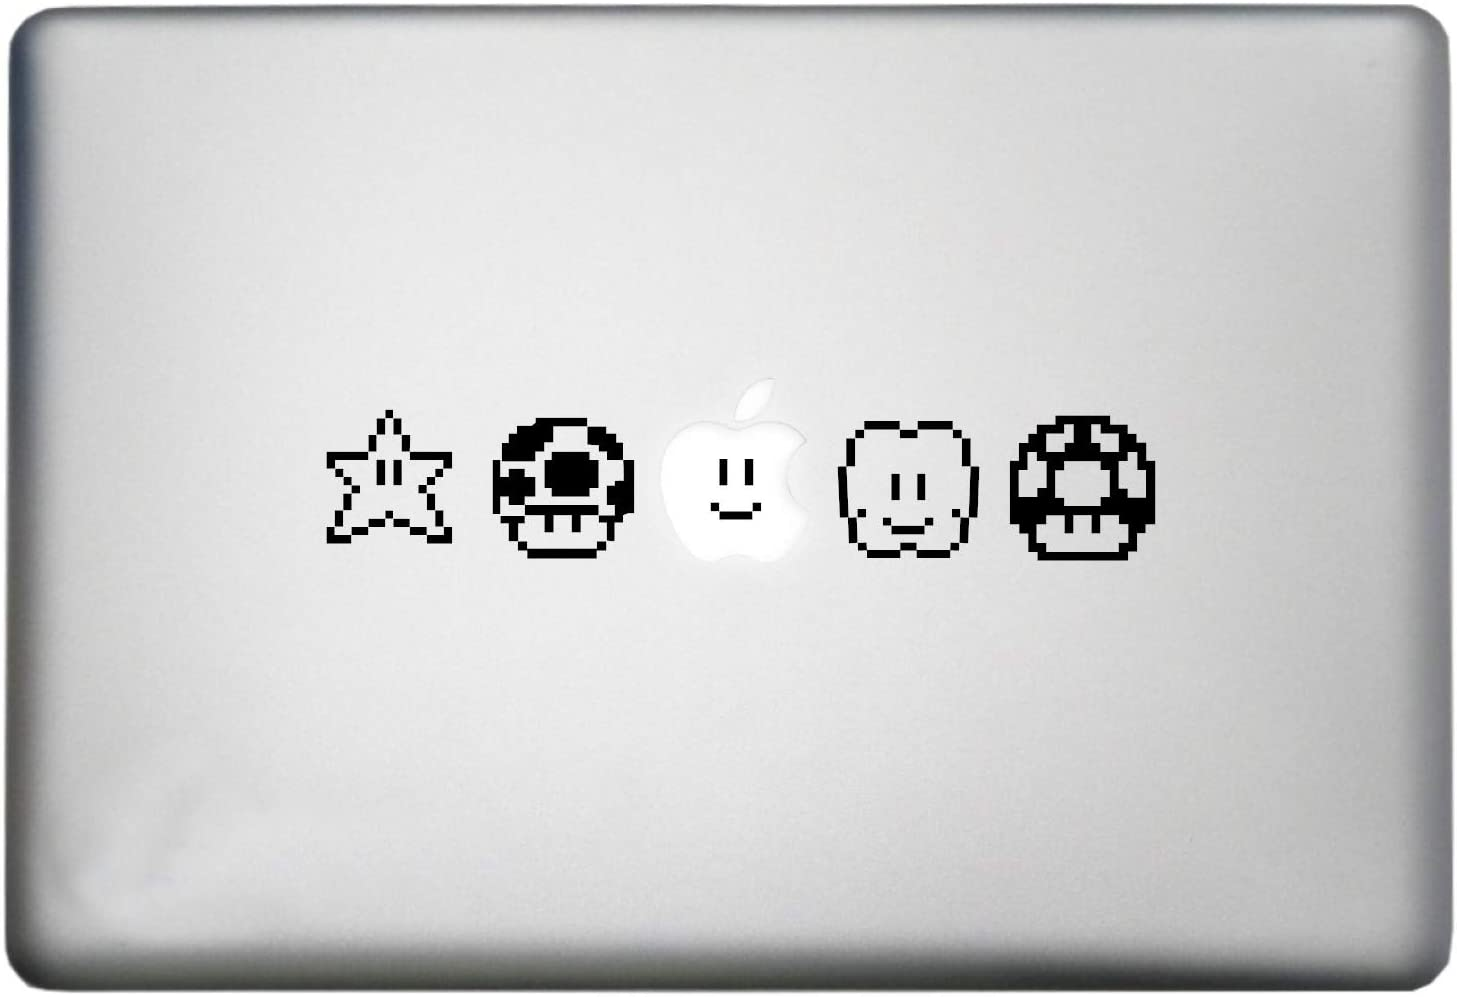 Roommates Nintendo Super Mario Bros Characters Vinyl Decal is a Super World Mario Bros MacBook Pro Sticker Art Print Decal. Laptop Sizes 11, 12, 13 and 15 inch. Many Colors-Black